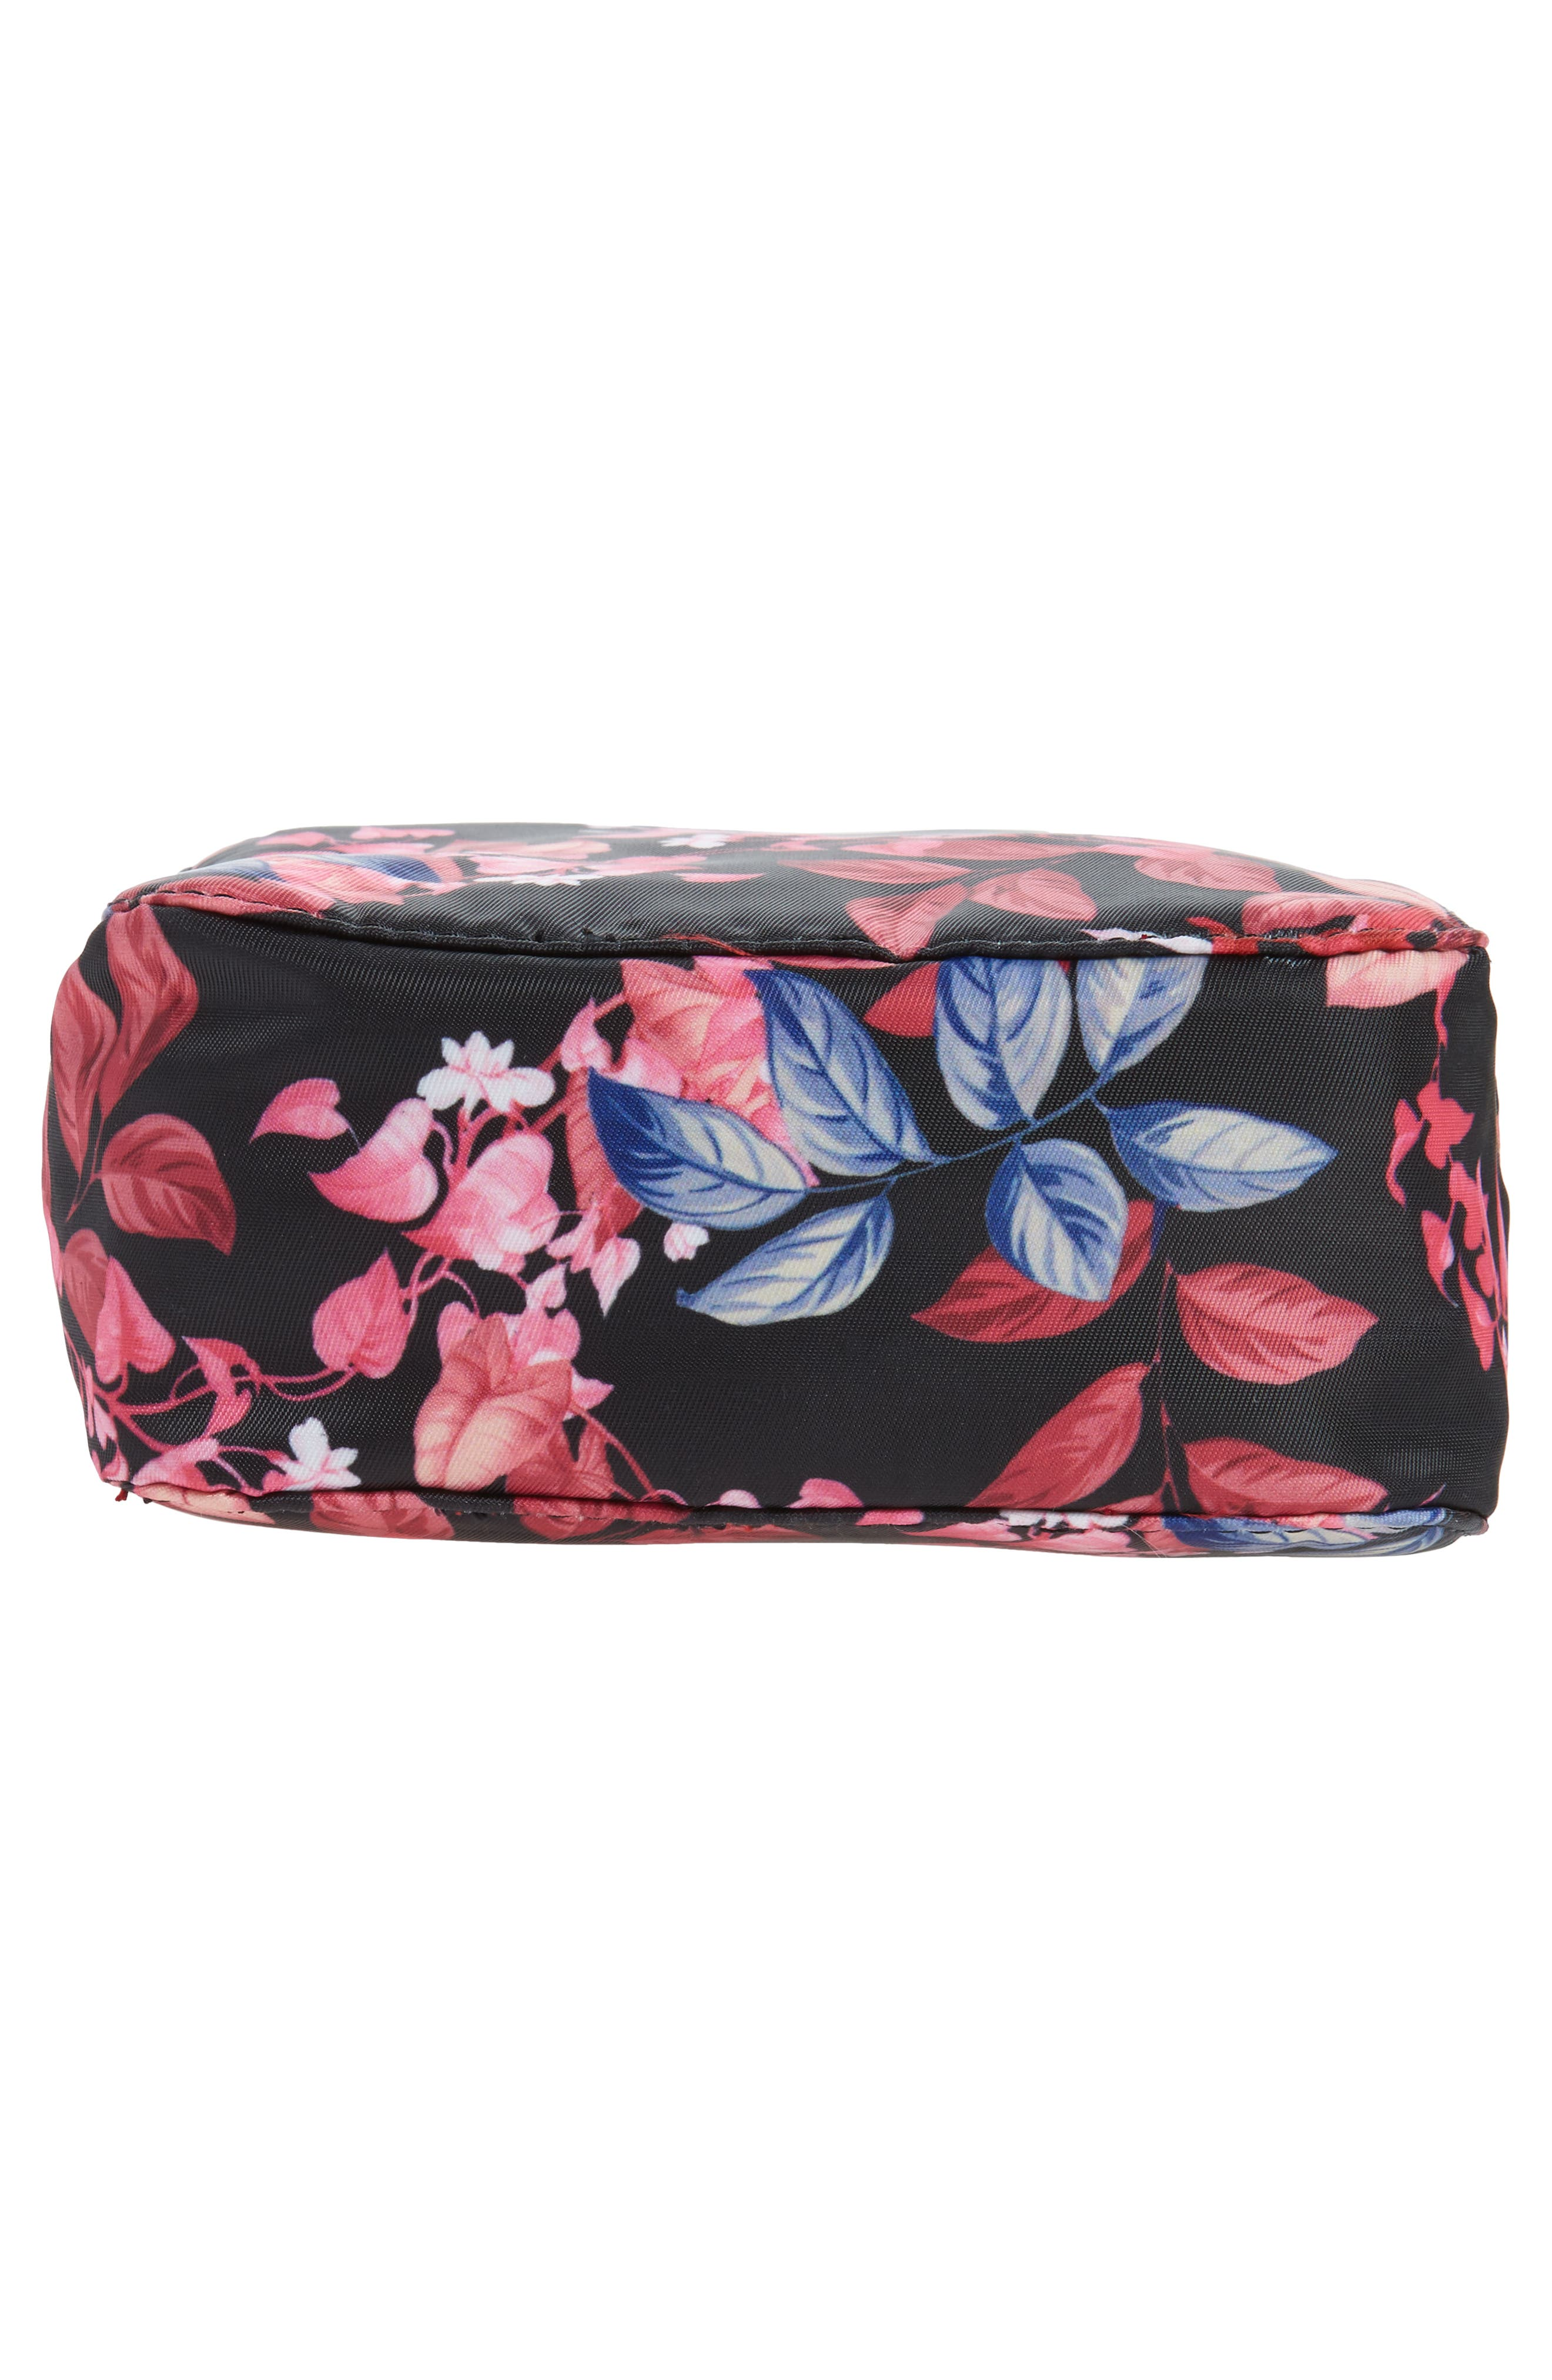 Up in the Air Cosmetics Case & Eye Mask,                             Alternate thumbnail 5, color,                             Fall Garden Part